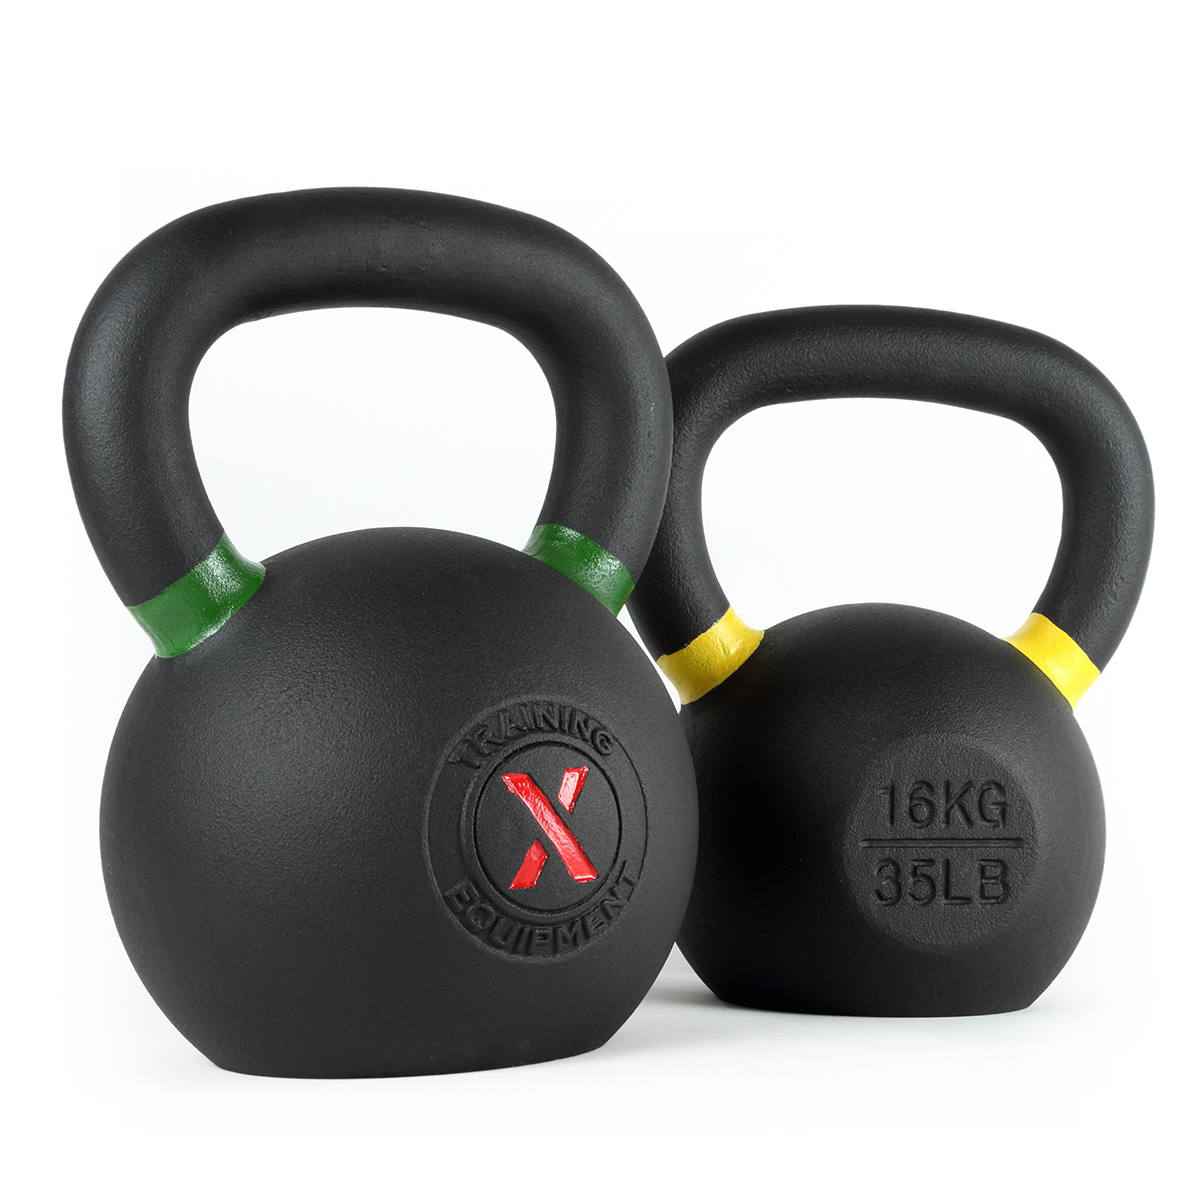 X Training Kettlebells